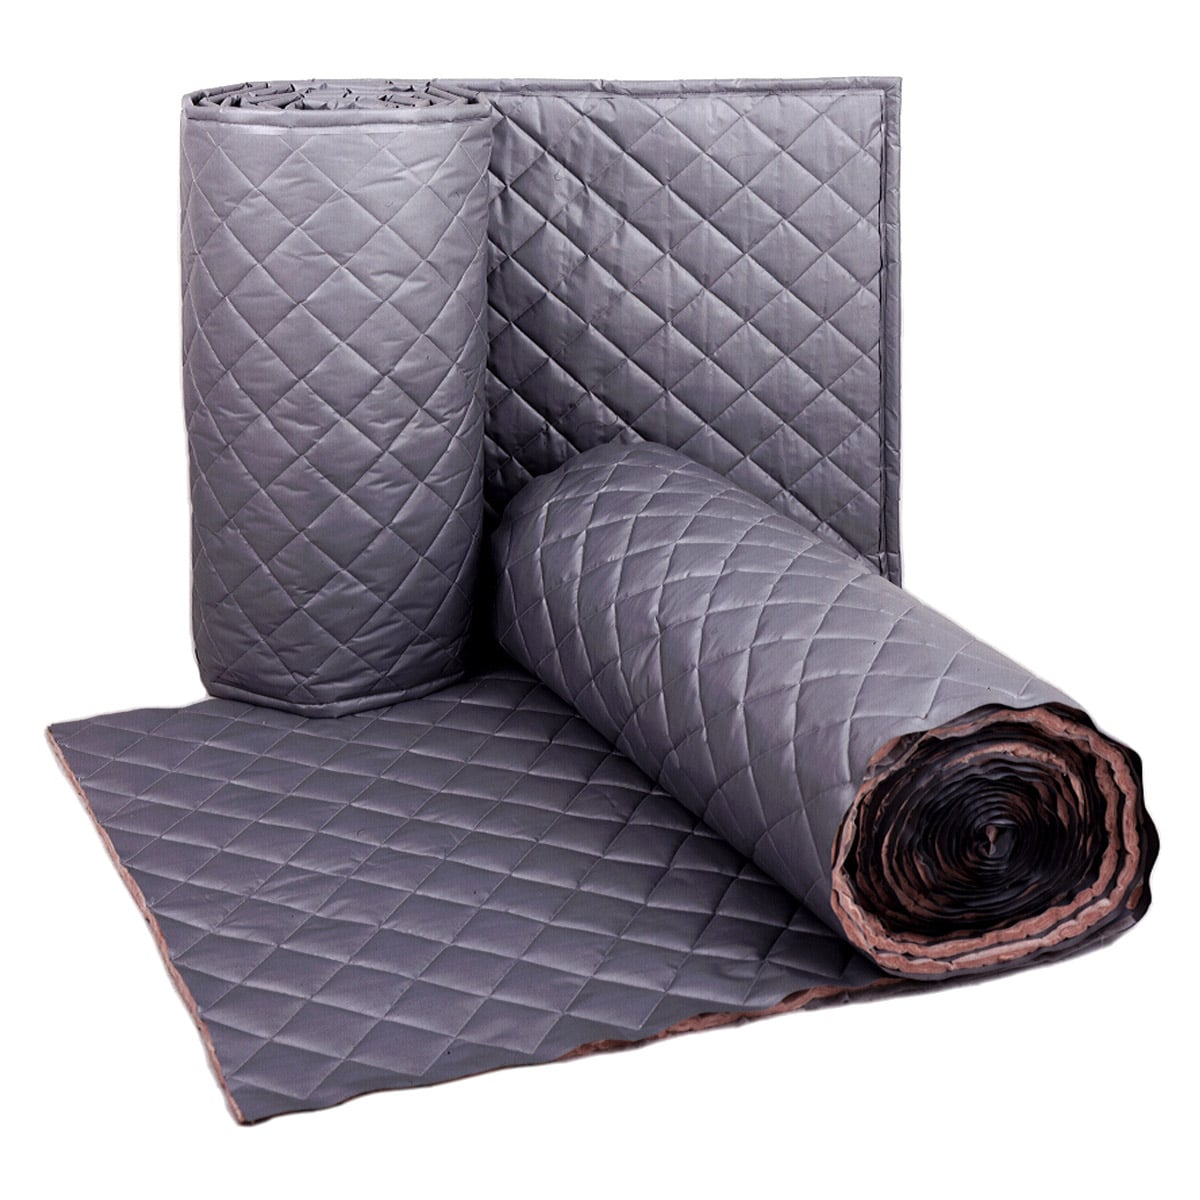 Aqfa 10ext Exterior Absorber Sound Blanket